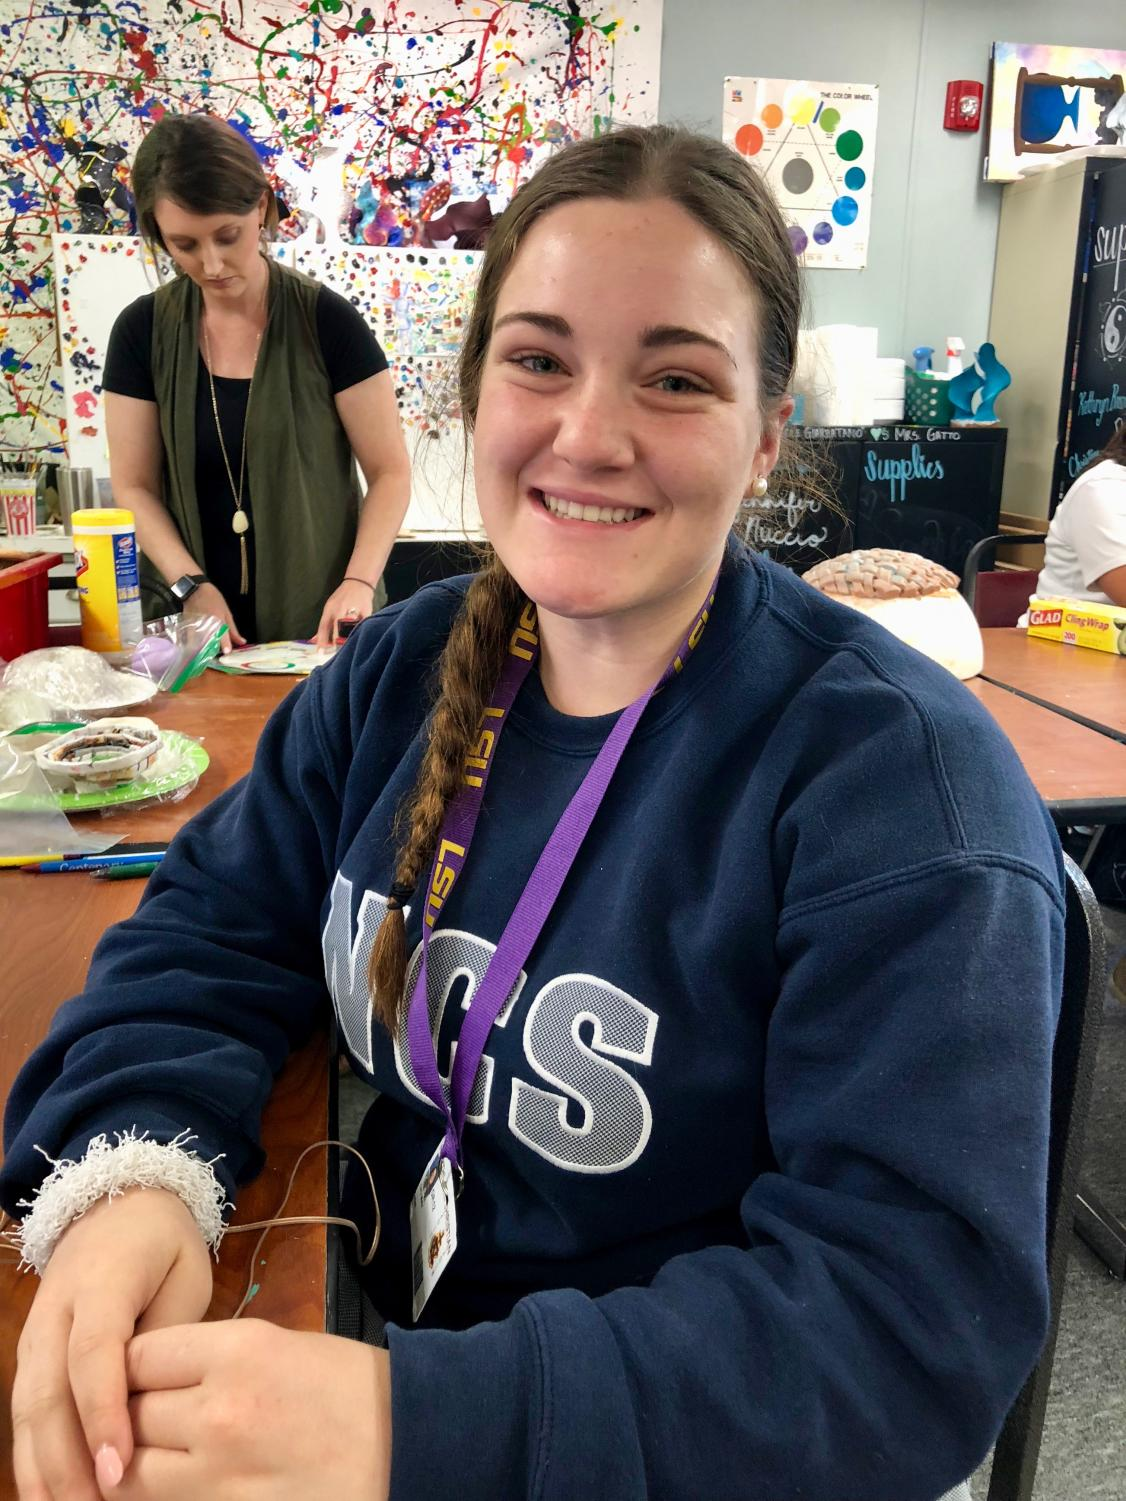 Giovanna May is one of 10 lifers who will graduate this May.